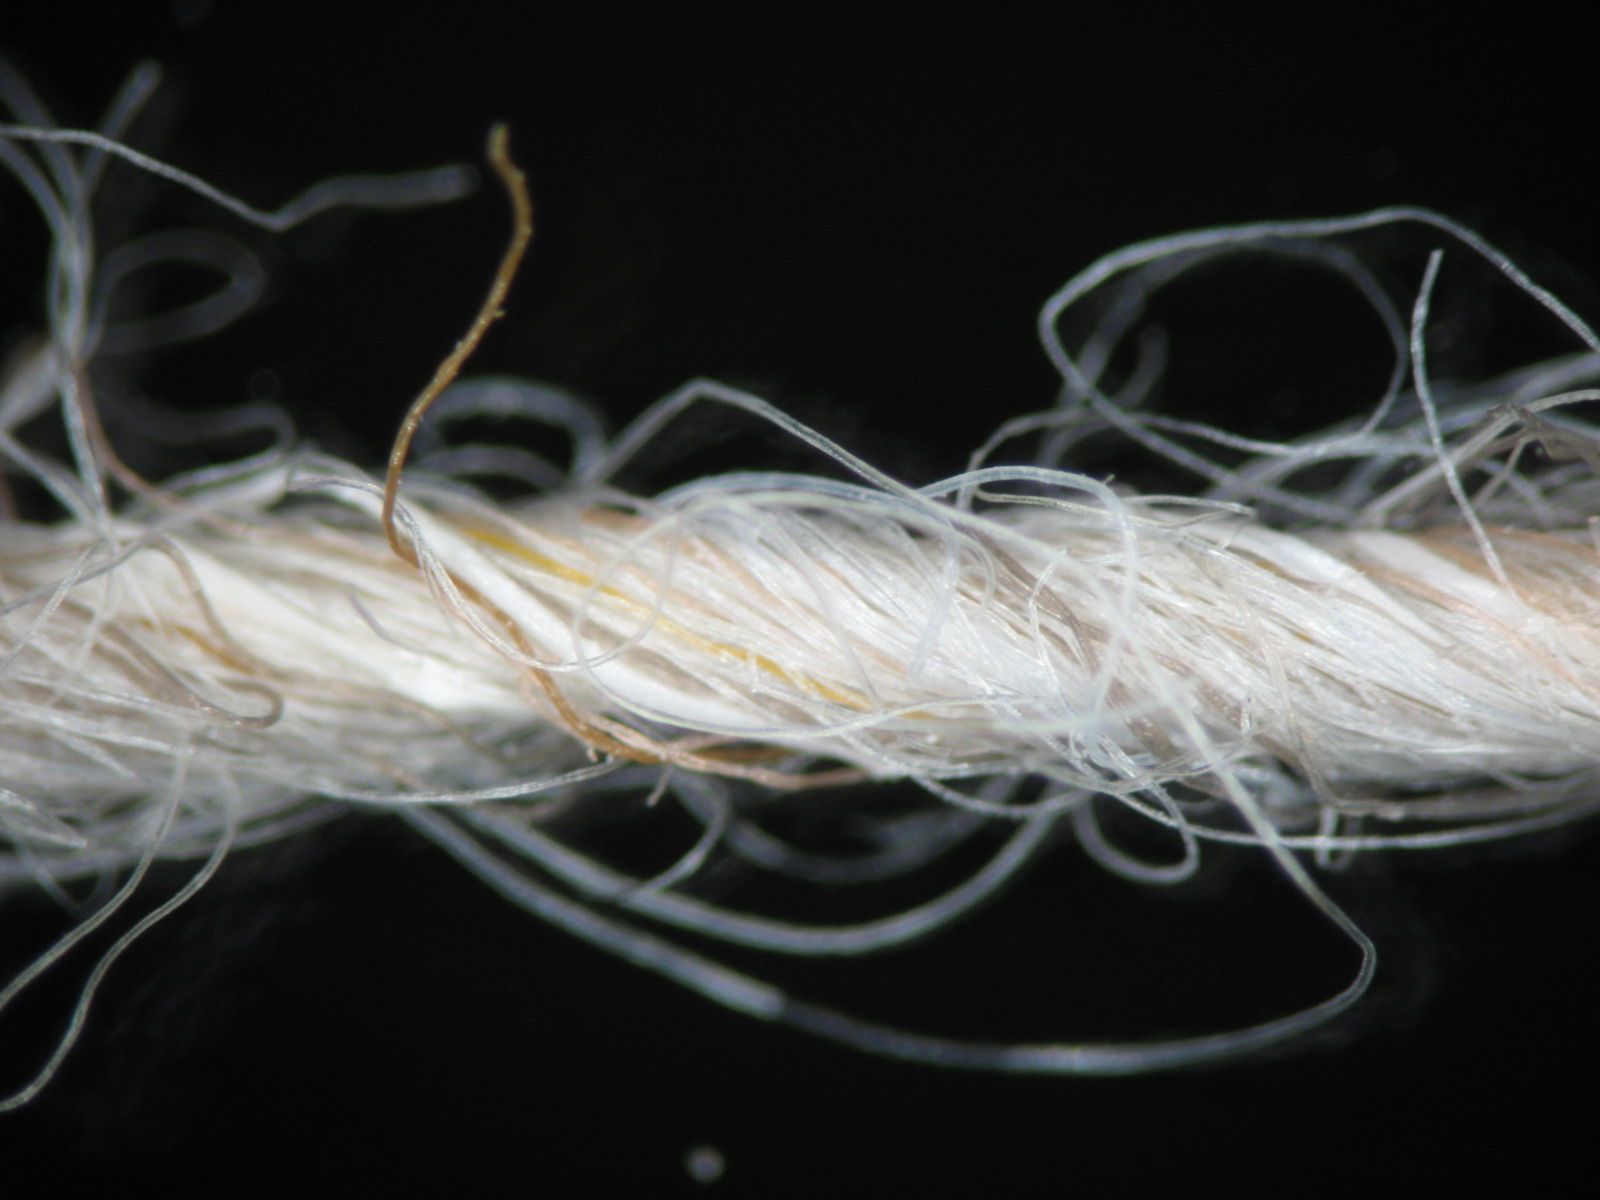 A magnified view of a section of yarn